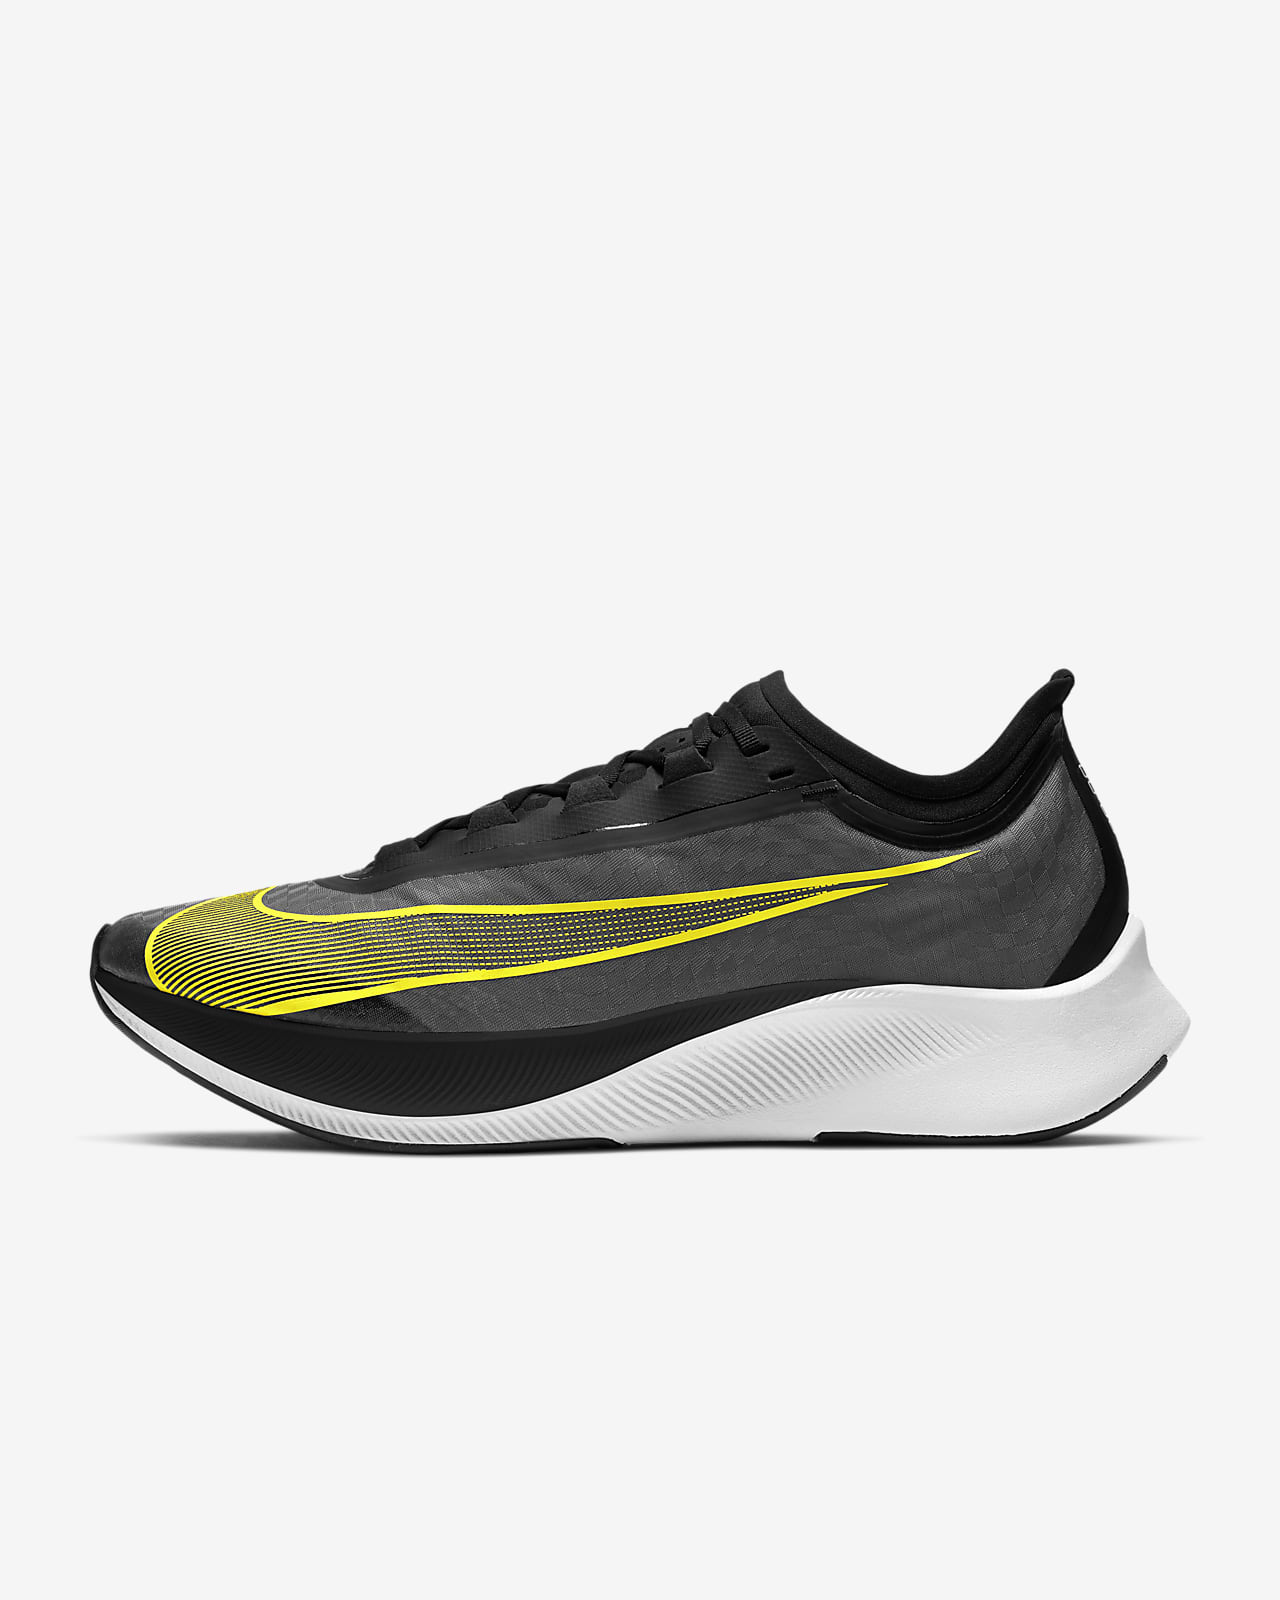 Nike Zoom Fly 3 Men's Running Shoe. Nike LU